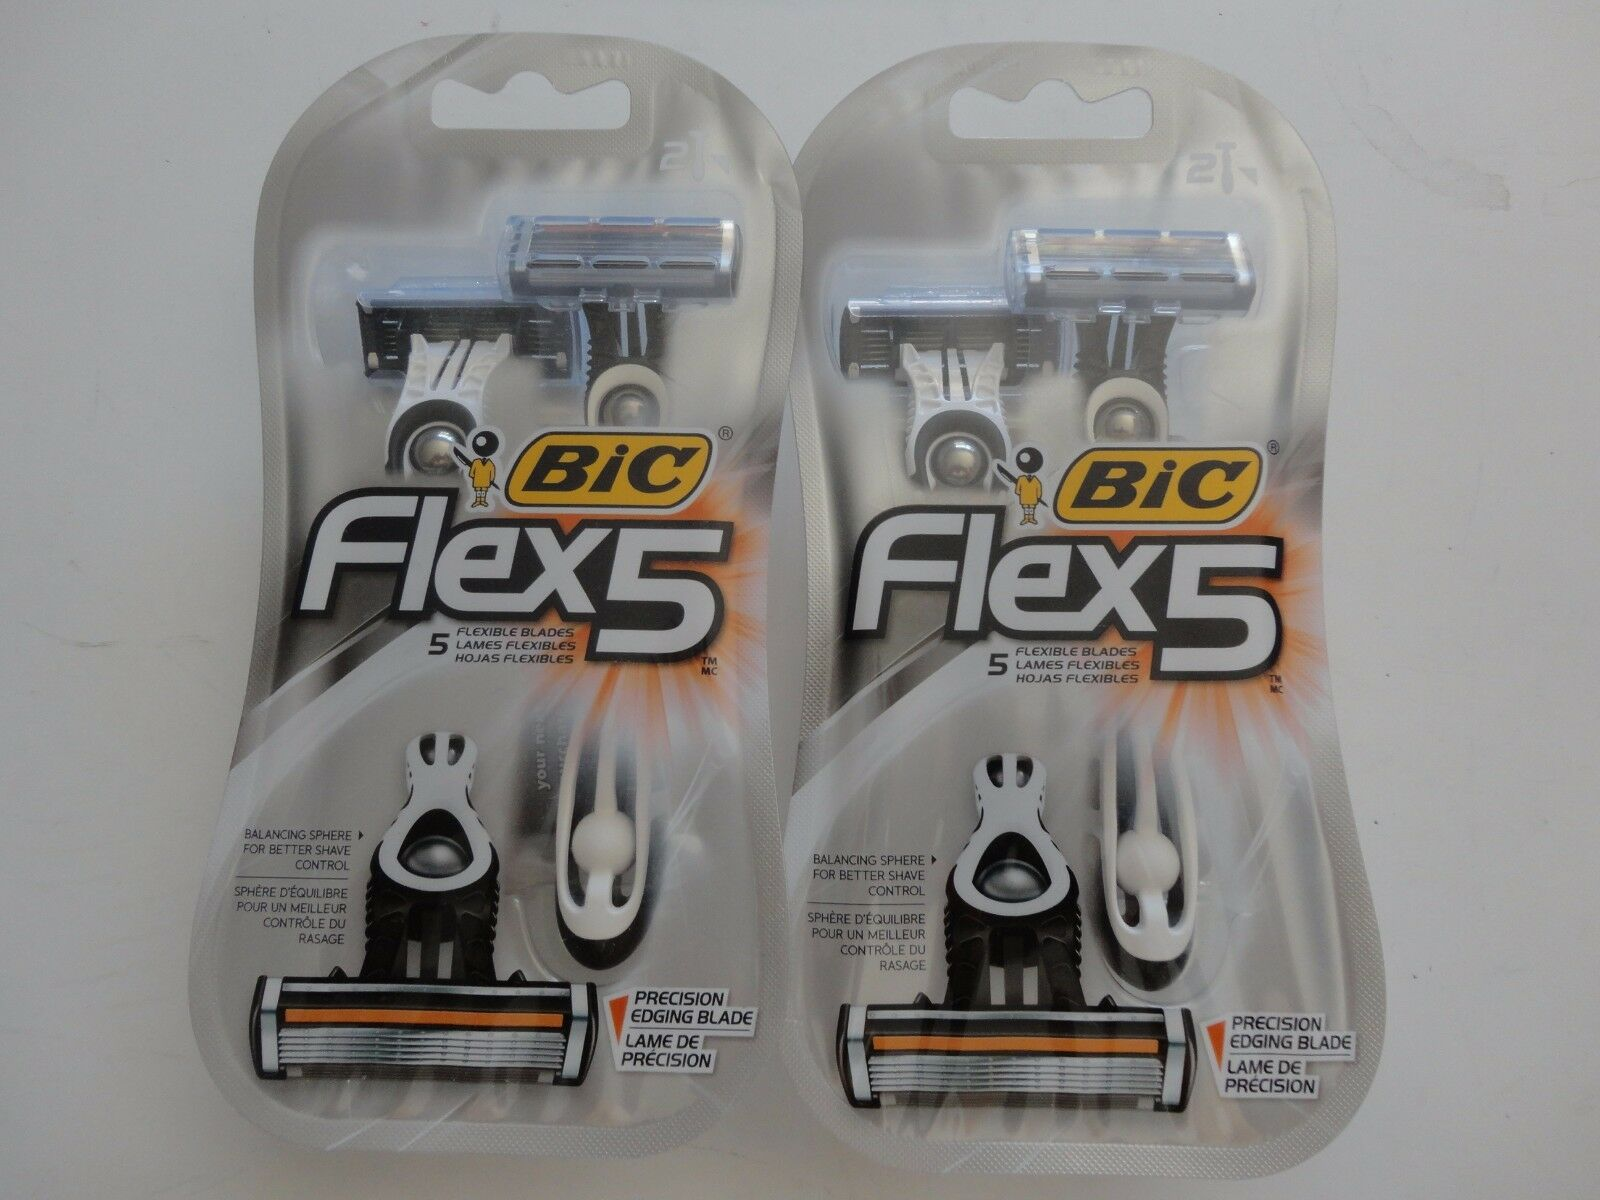 BiC Flex 5 Disposable Razors, 2 count